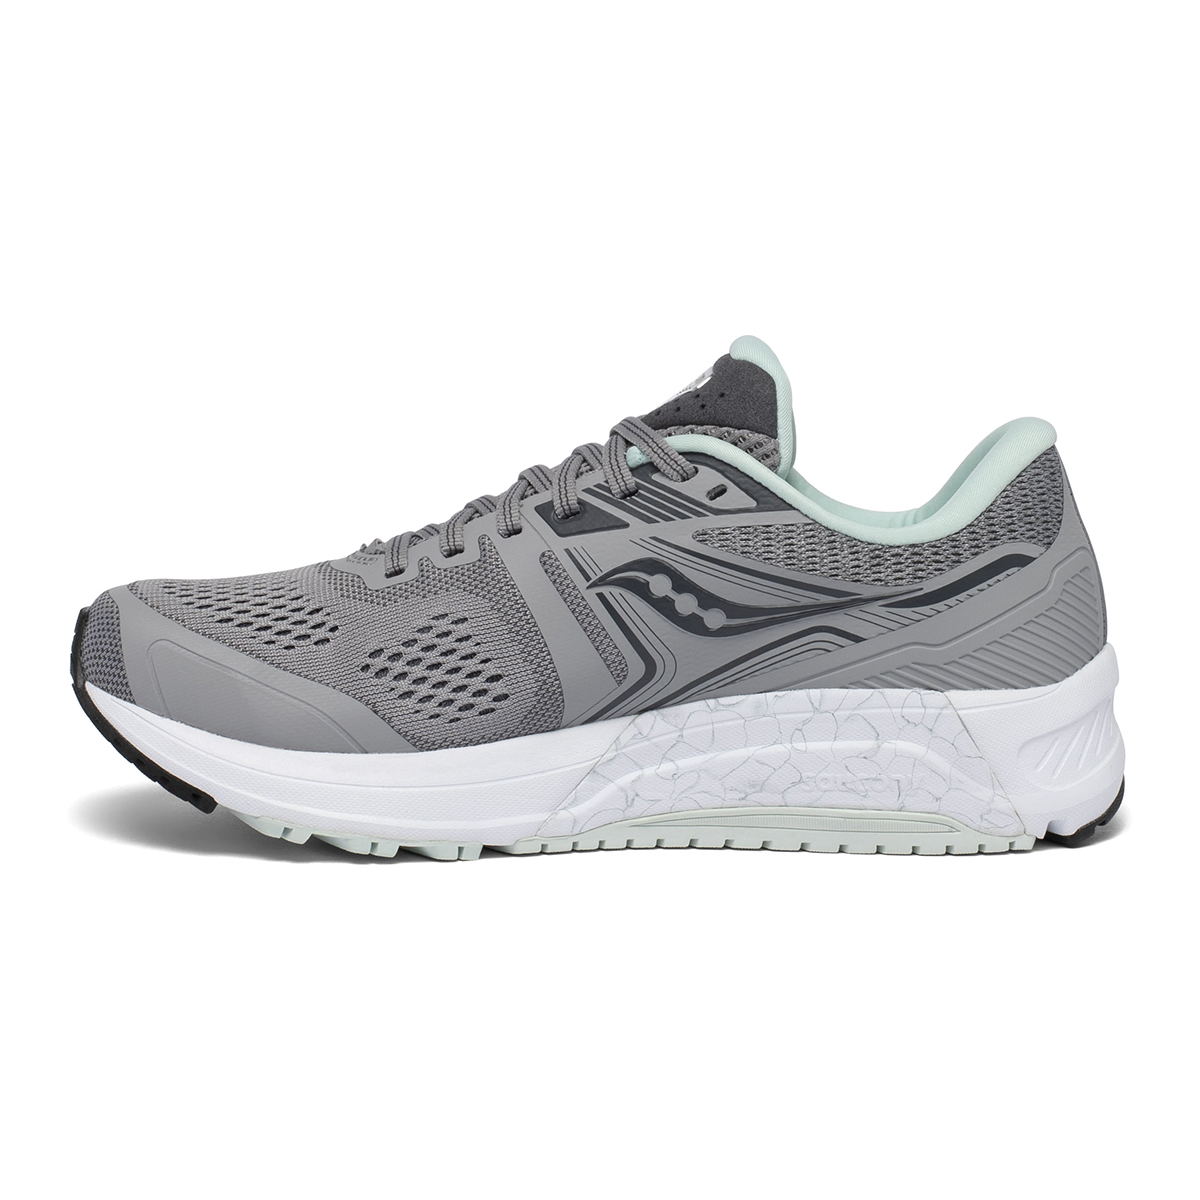 Women's Saucony Omni 19 Running Shoe - Color: White Mutant - Size: 5 - Width: Wide, White Mutant, large, image 2